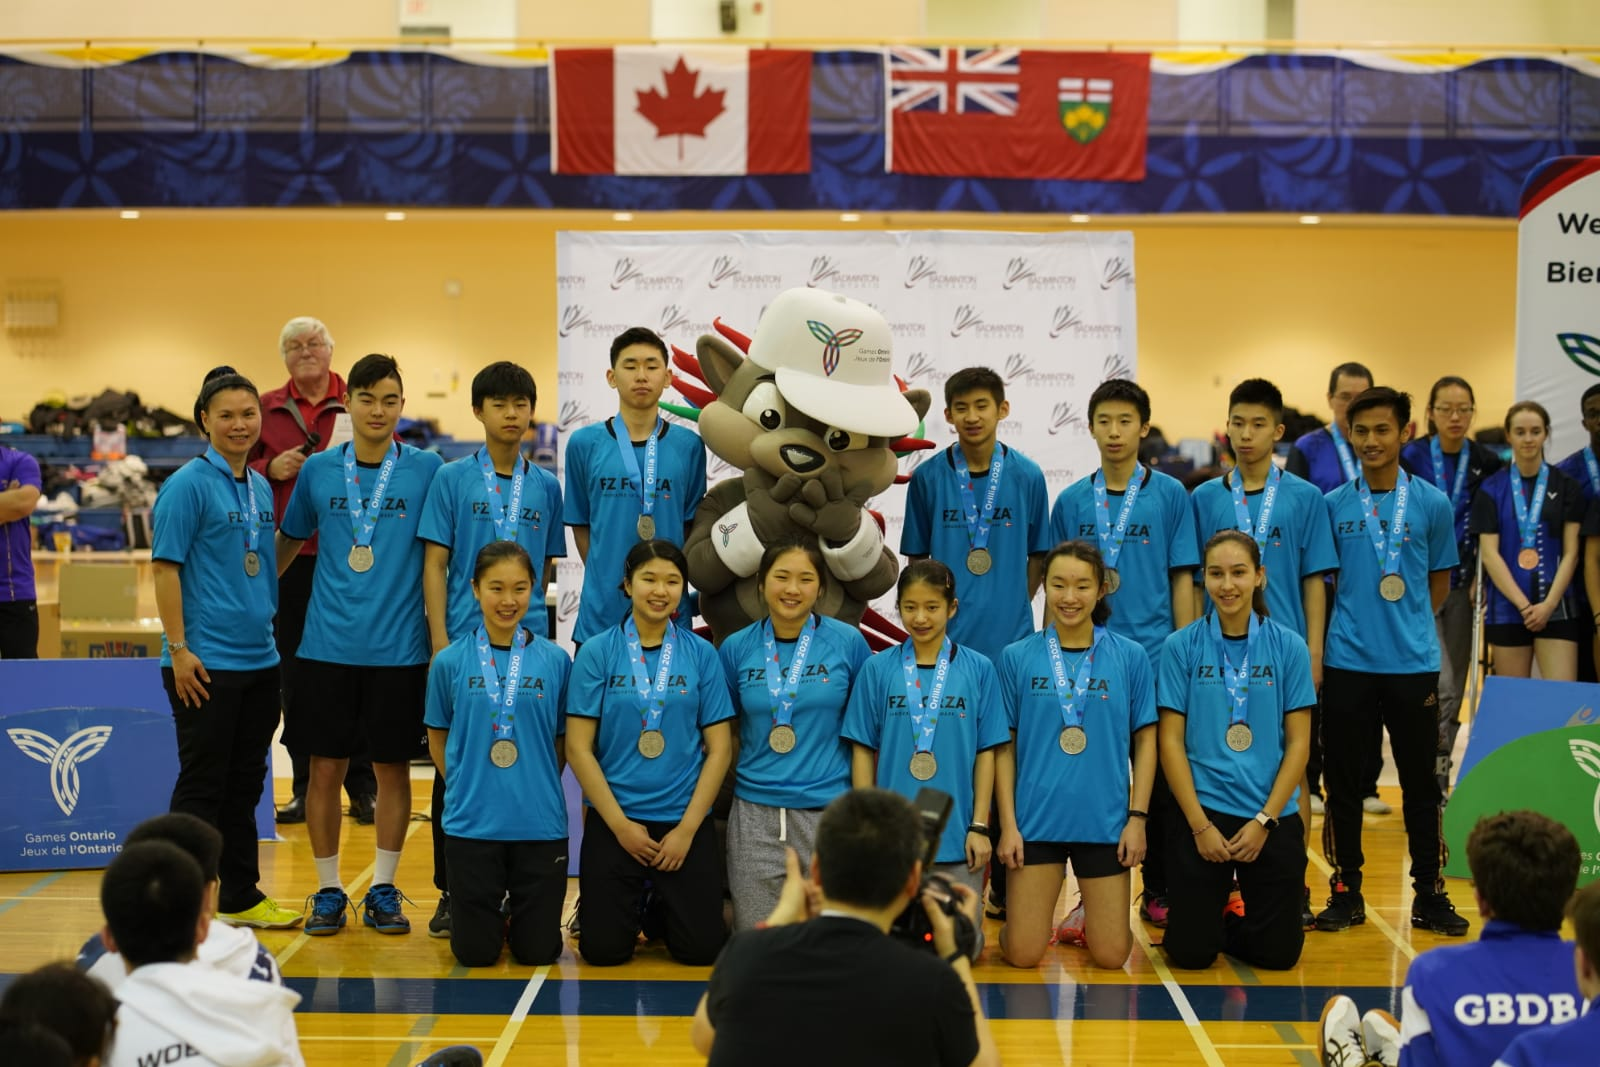 Team photo with silver medals